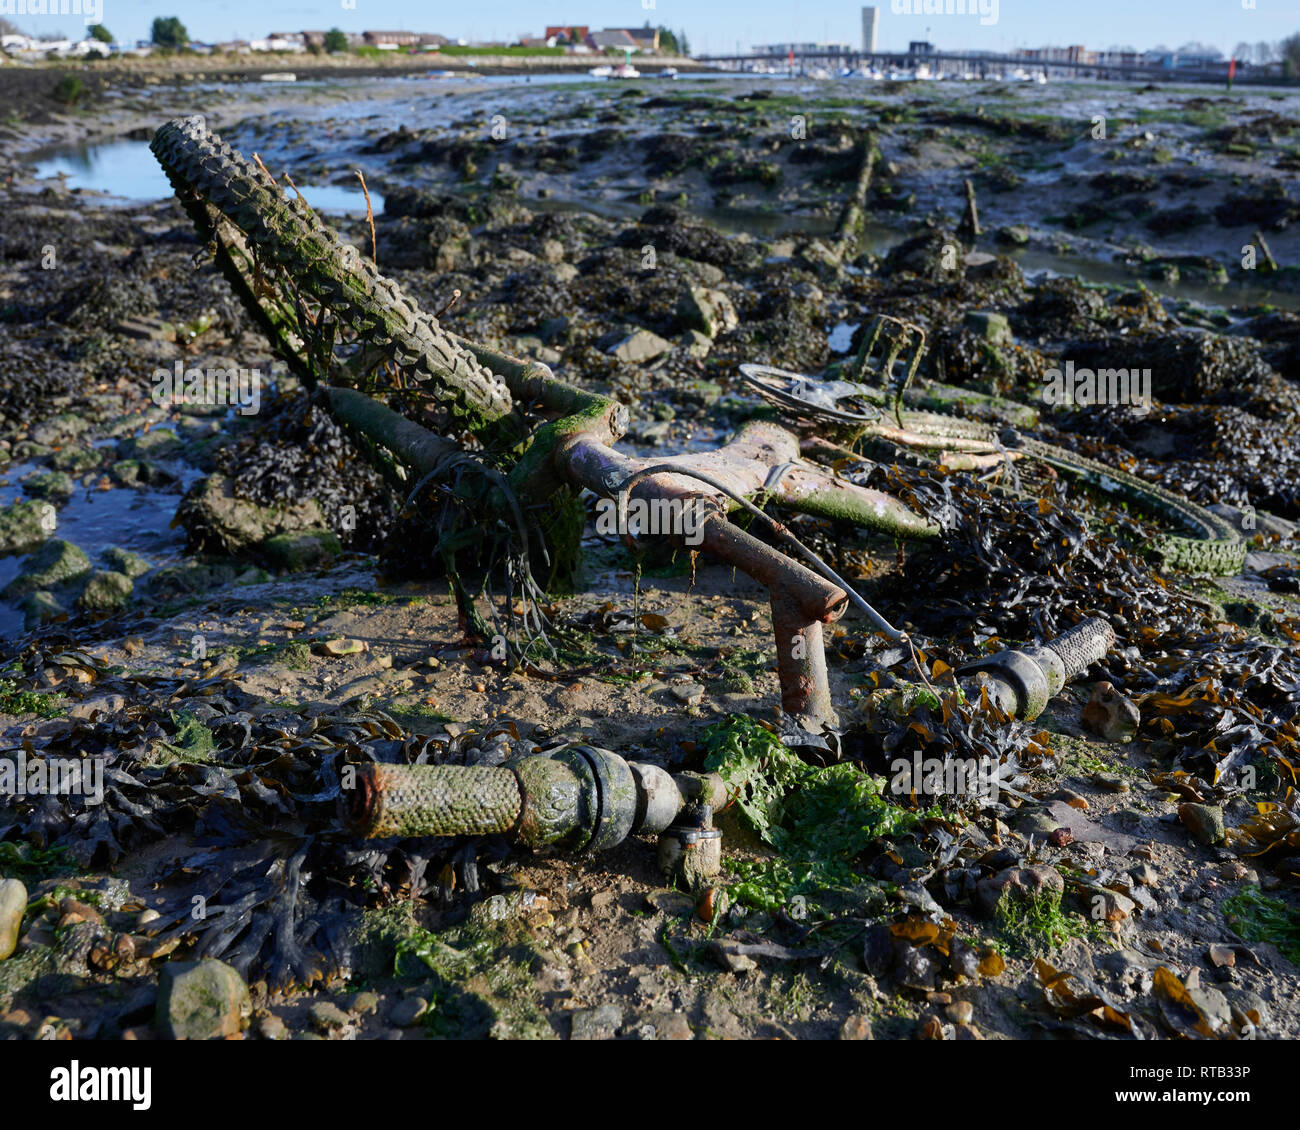 Bicycle thoughtlessly discarded to the sea. Once someones treasured possession, now needlessly dumped and polluting. - Stock Image